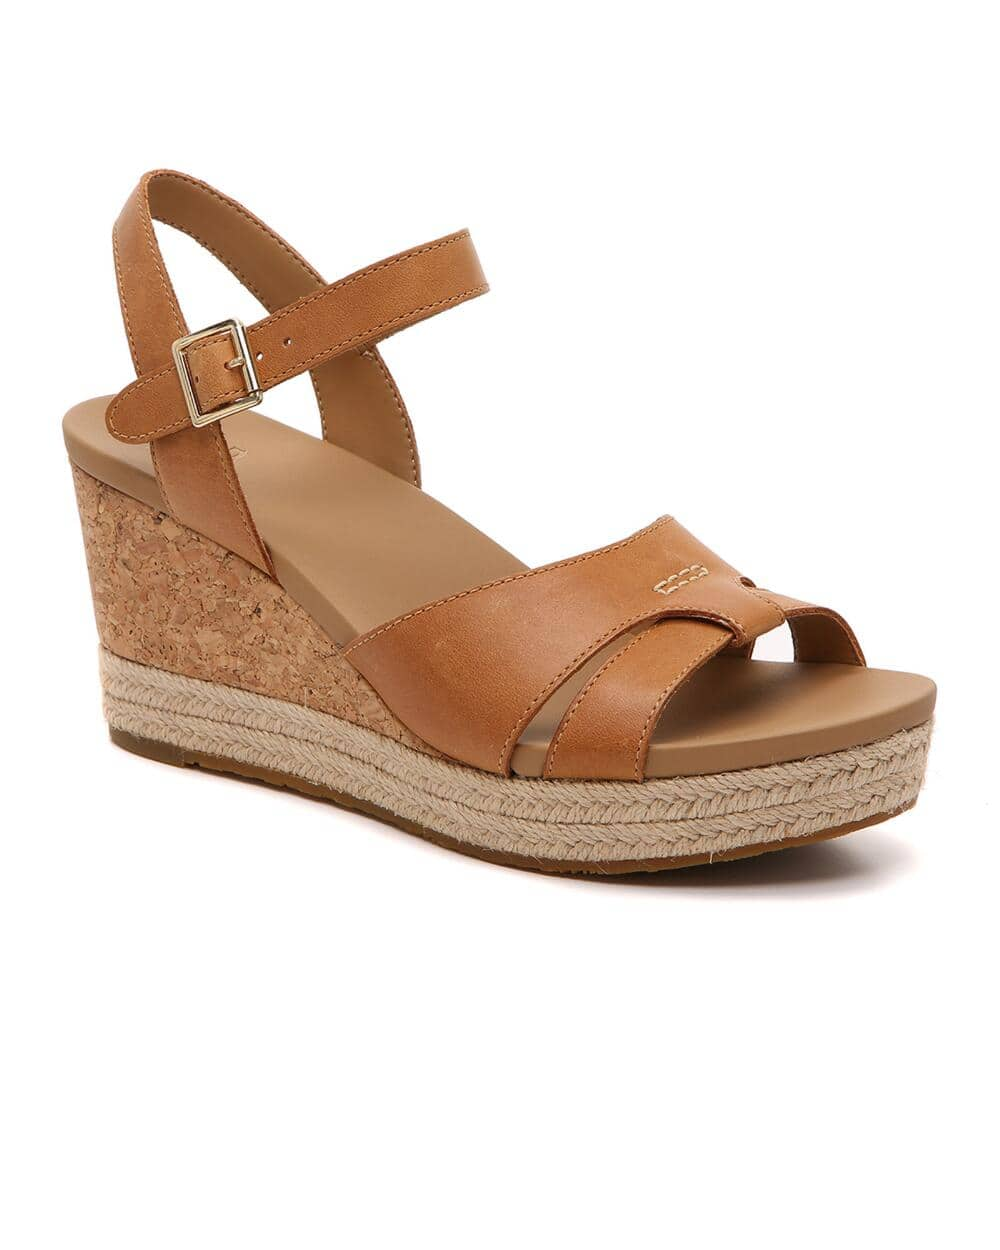 Stein Mart  Extra 60% off Dress and Clearance Shoes + Stacking Codes- UGG Espadrilles $48